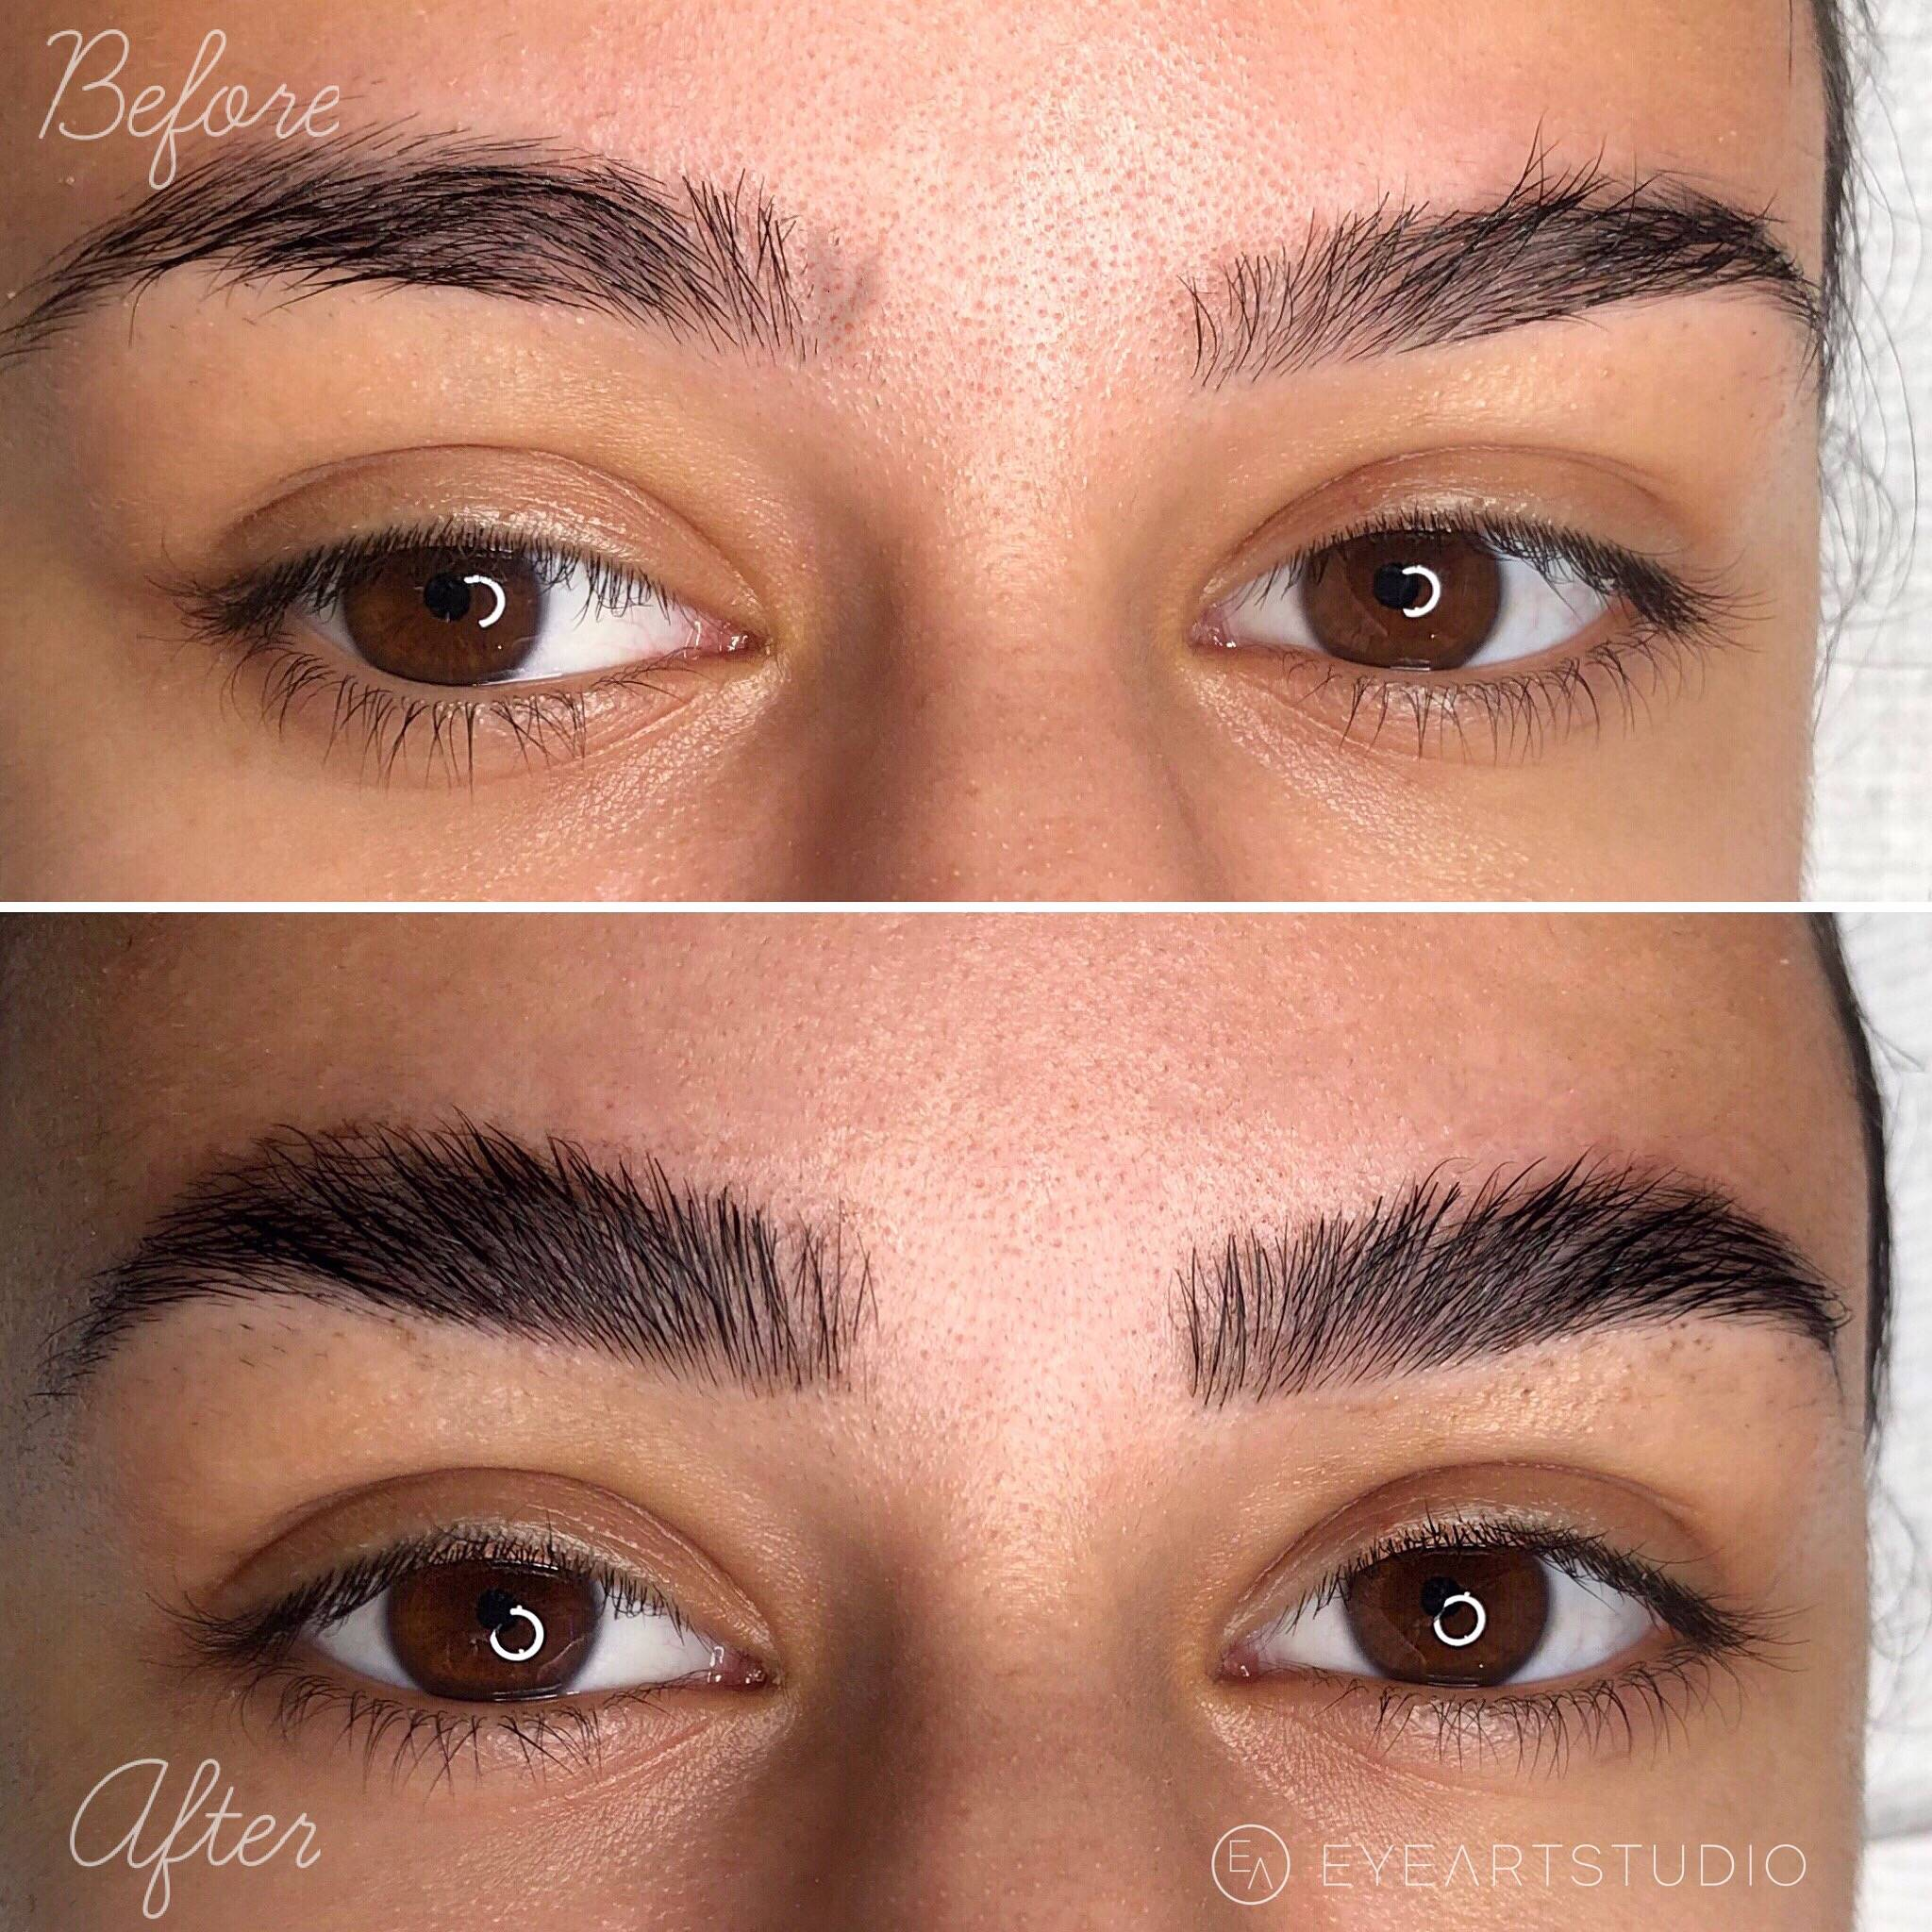 Brow Lamination, Eyebrow Laminating Moonee Ponds, Keratin Brow Lamination